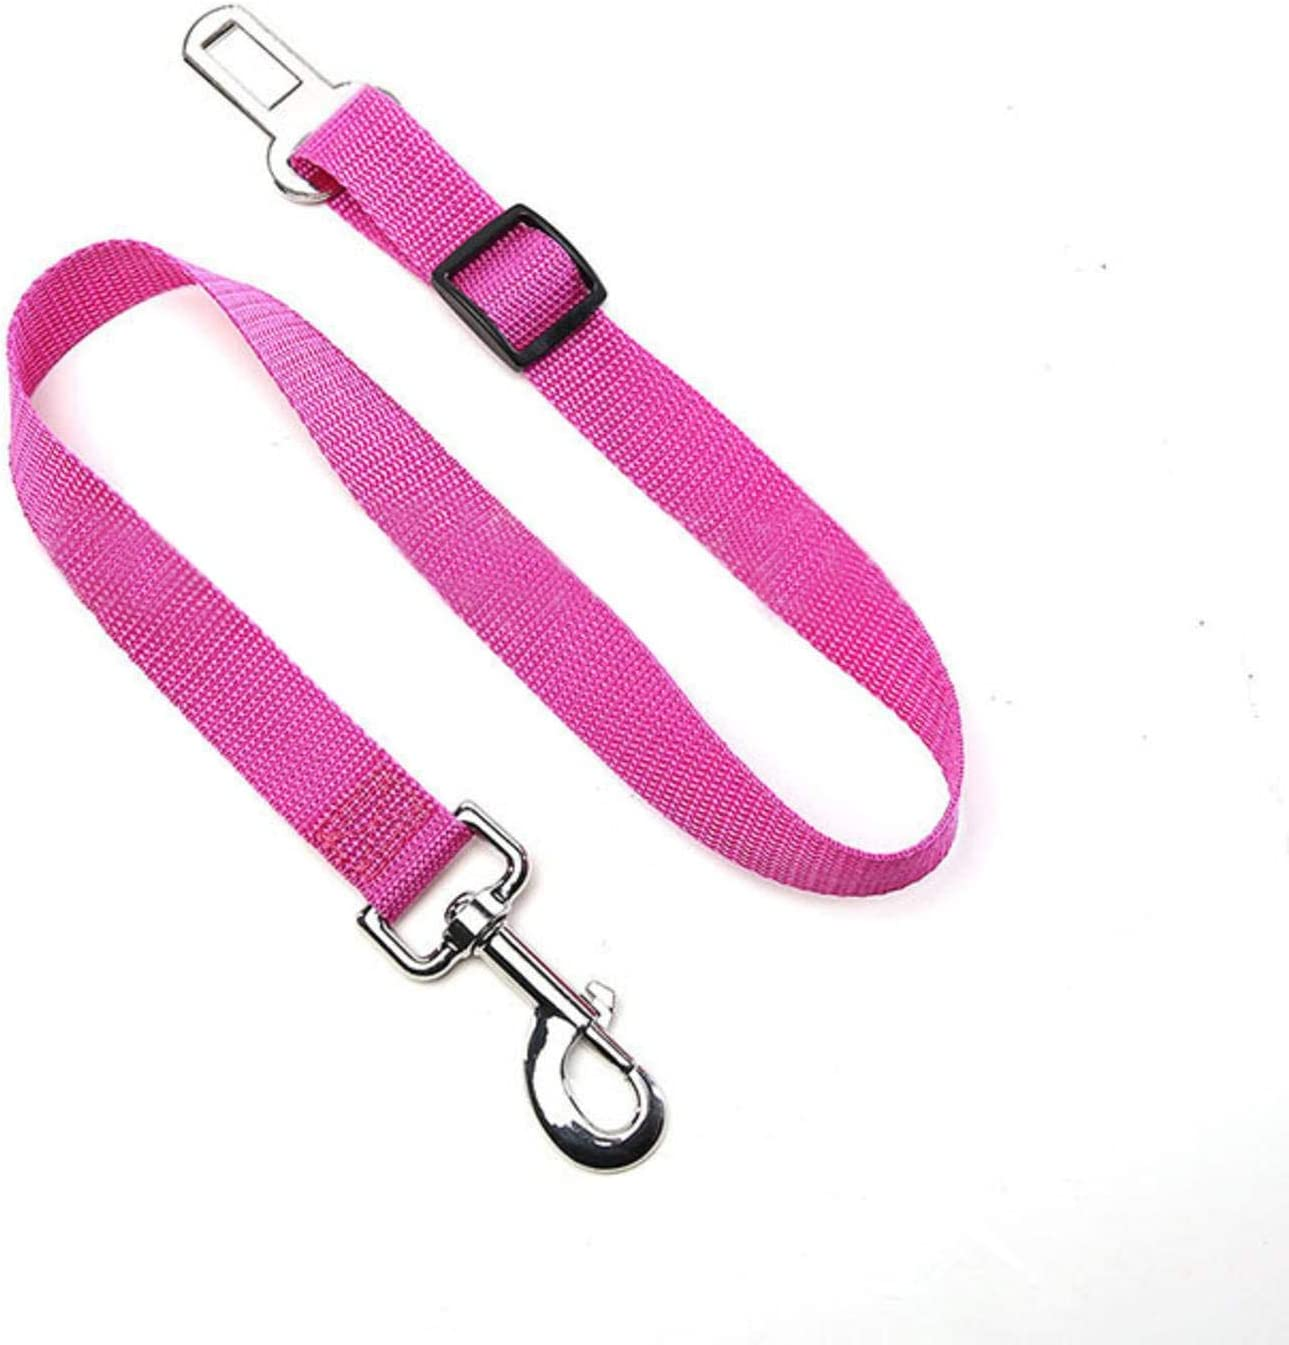 New Breathable Mesh Dog Harness Pet Straps Store Leash with Ranking TOP3 Adjustable